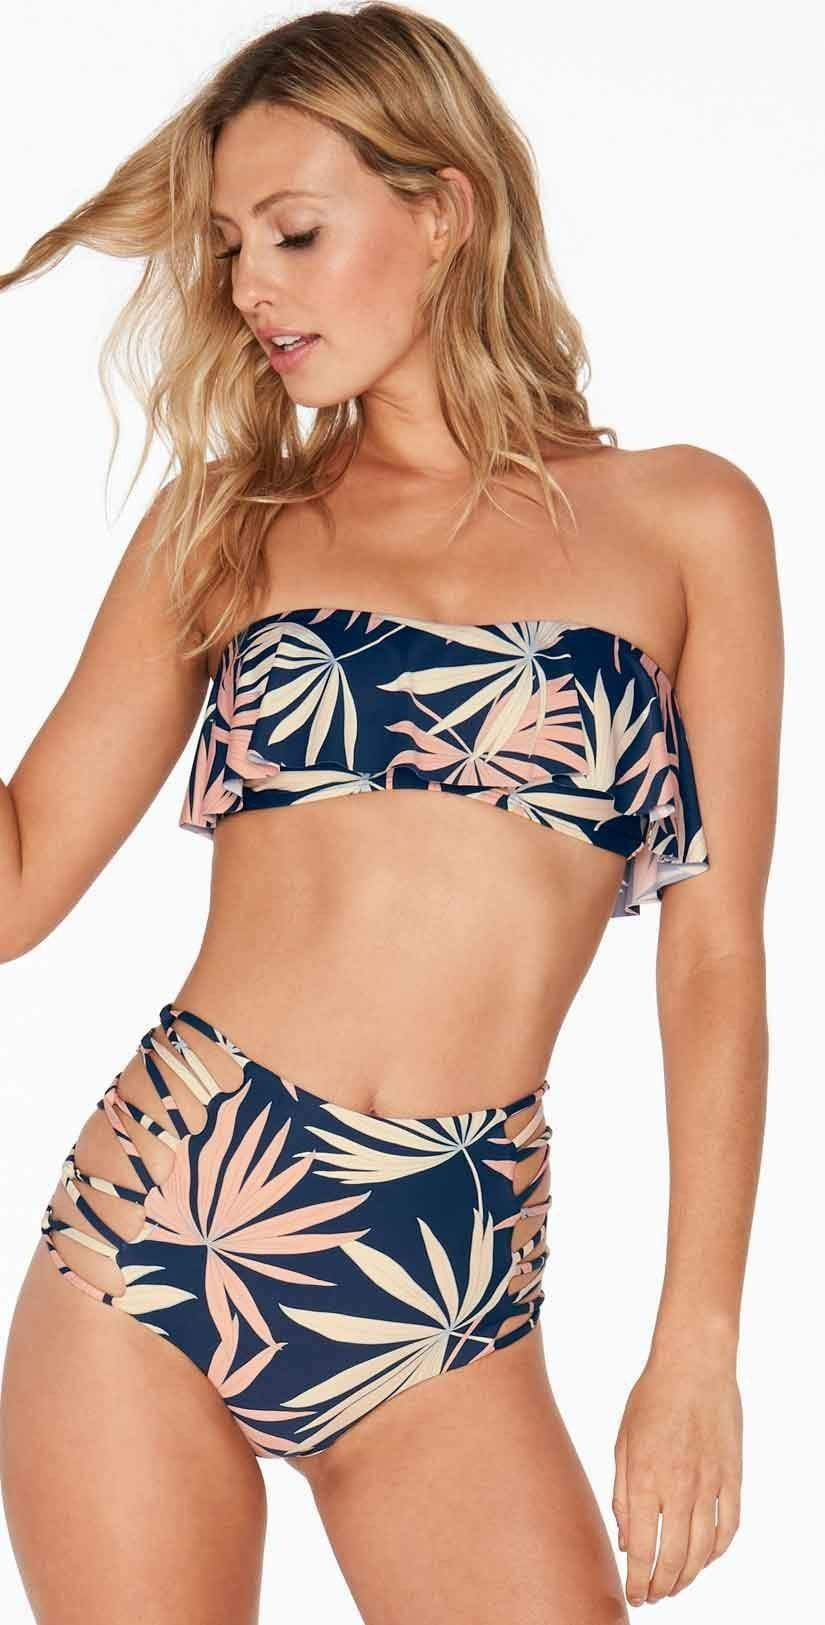 L Space Lynn Top in Polynesian Palm PNLYT18-NVY: